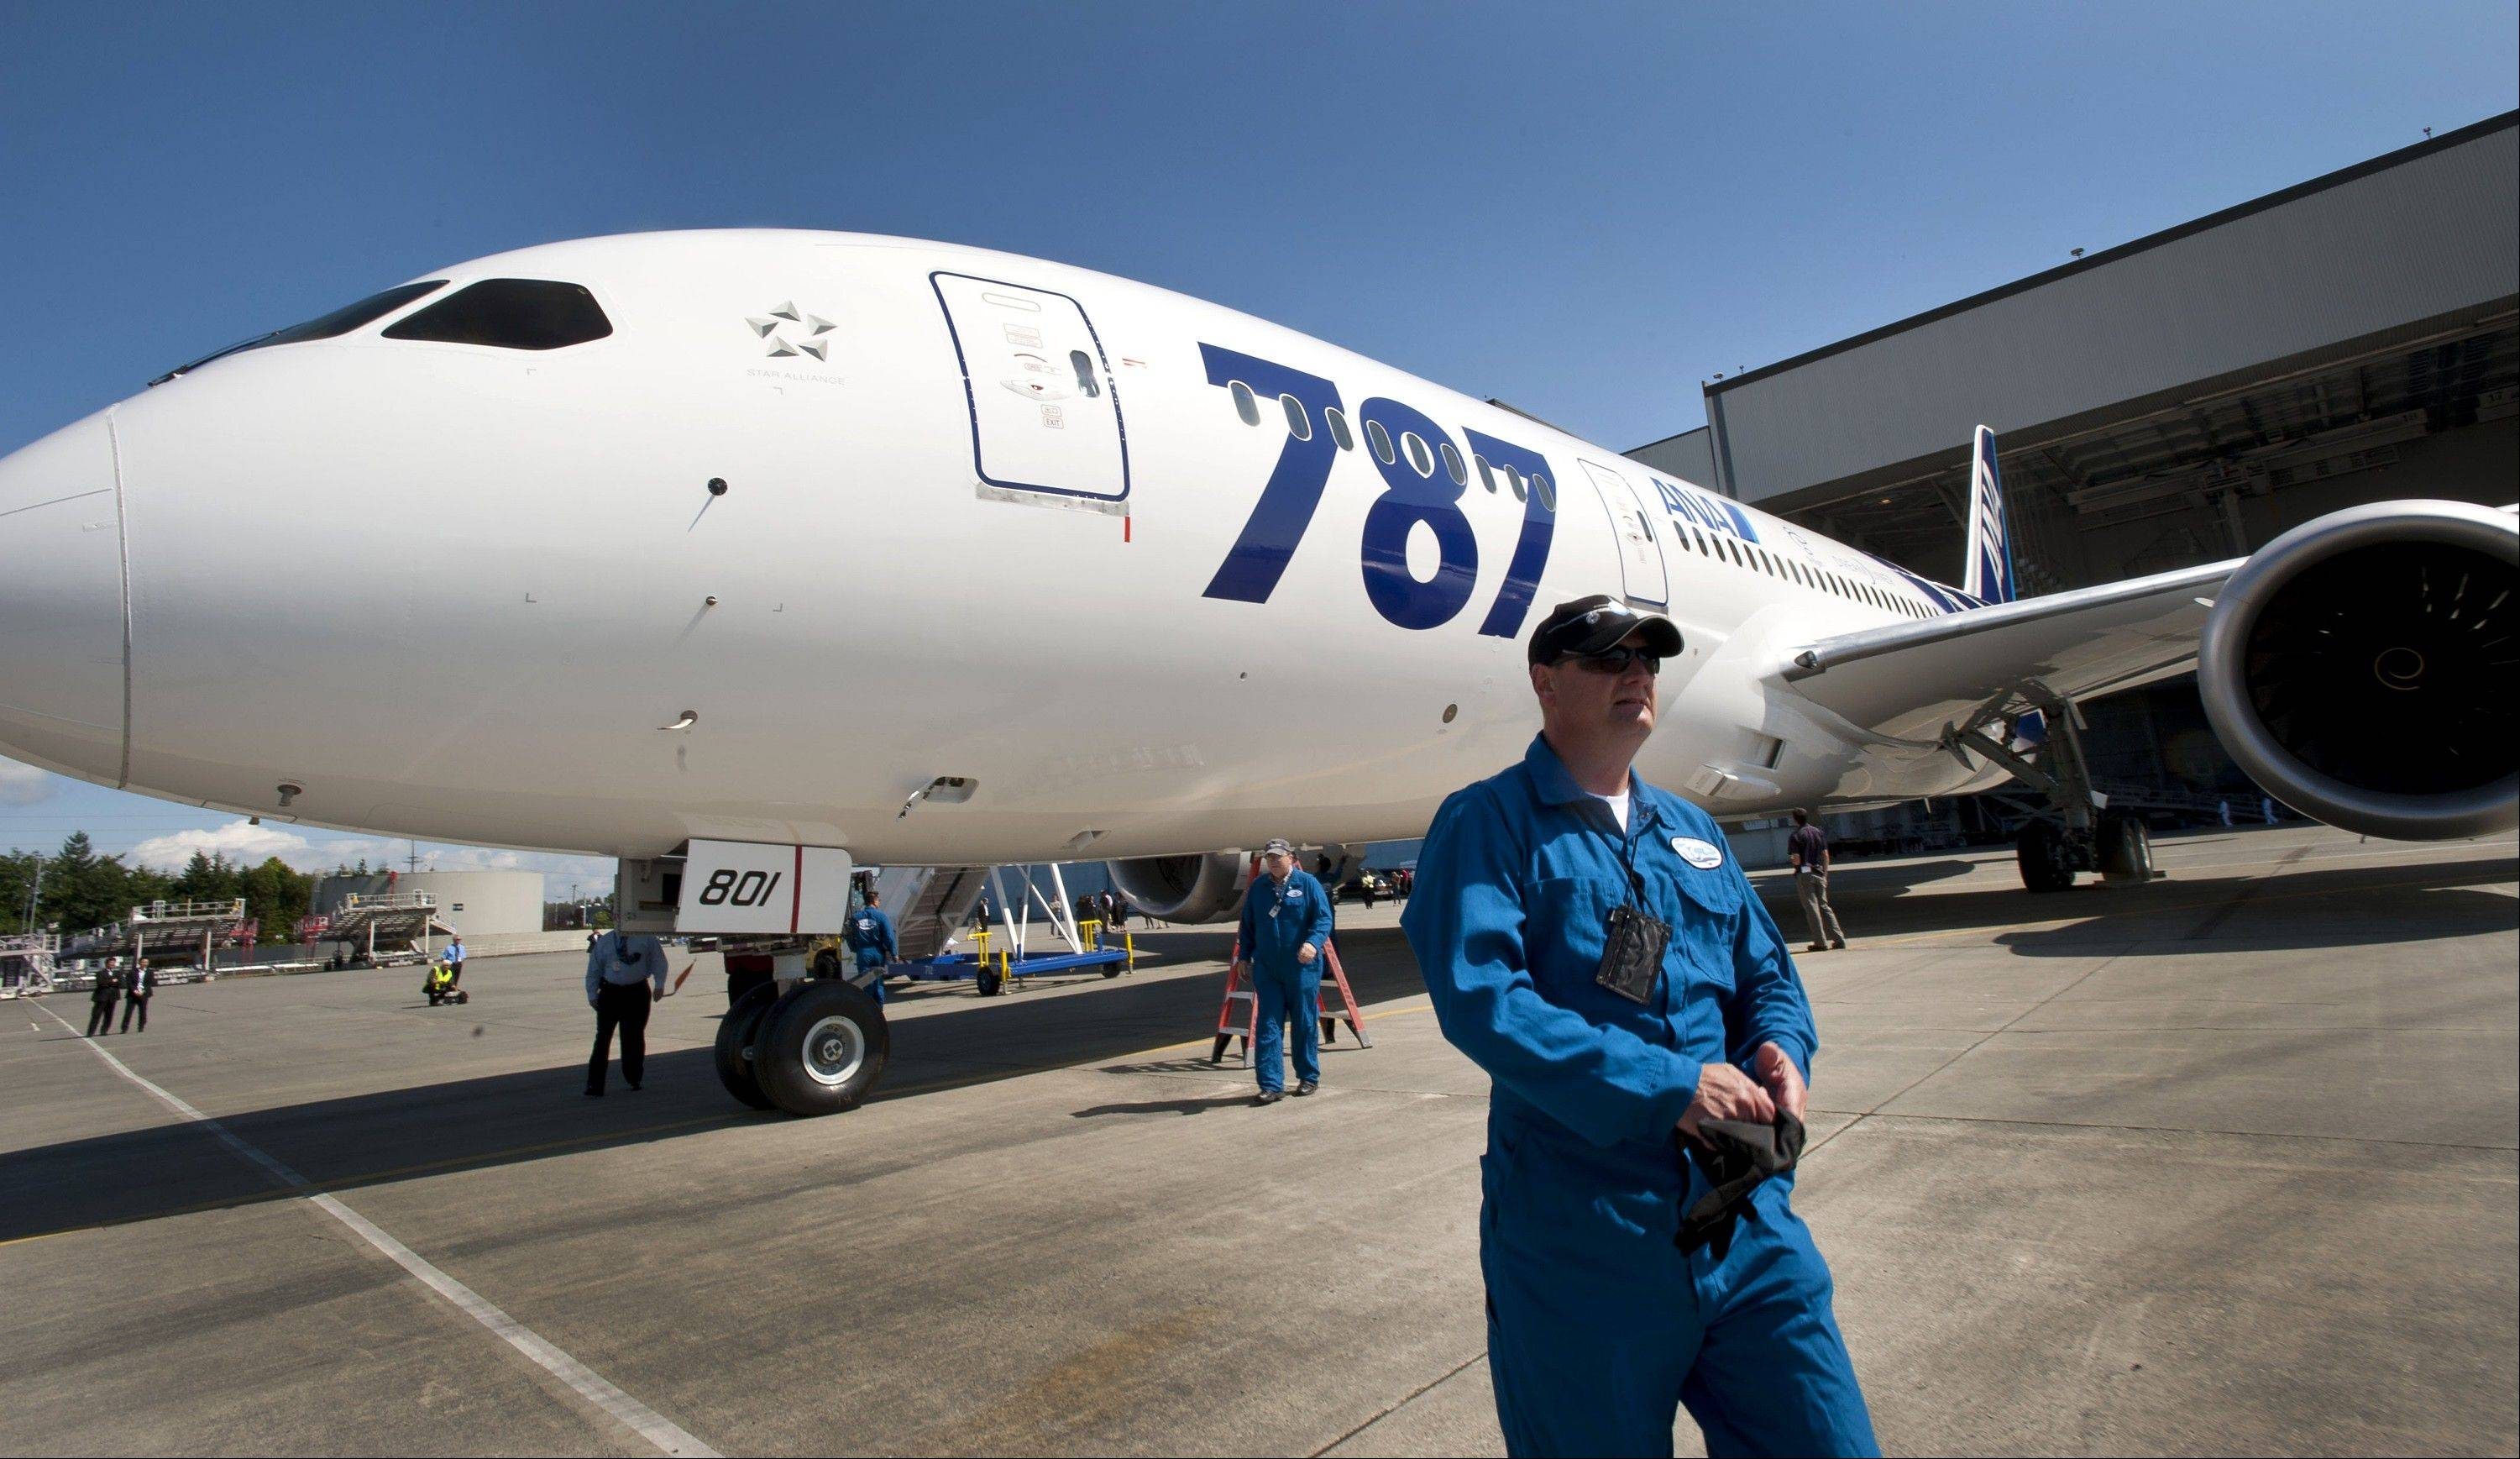 Boeing Co. rose the most in six weeks in New York trading as the delivery of the 787 Dreamliner ended more than three years of delays on the world's first jetliner with a fuselage made of carbon-fiber composites.